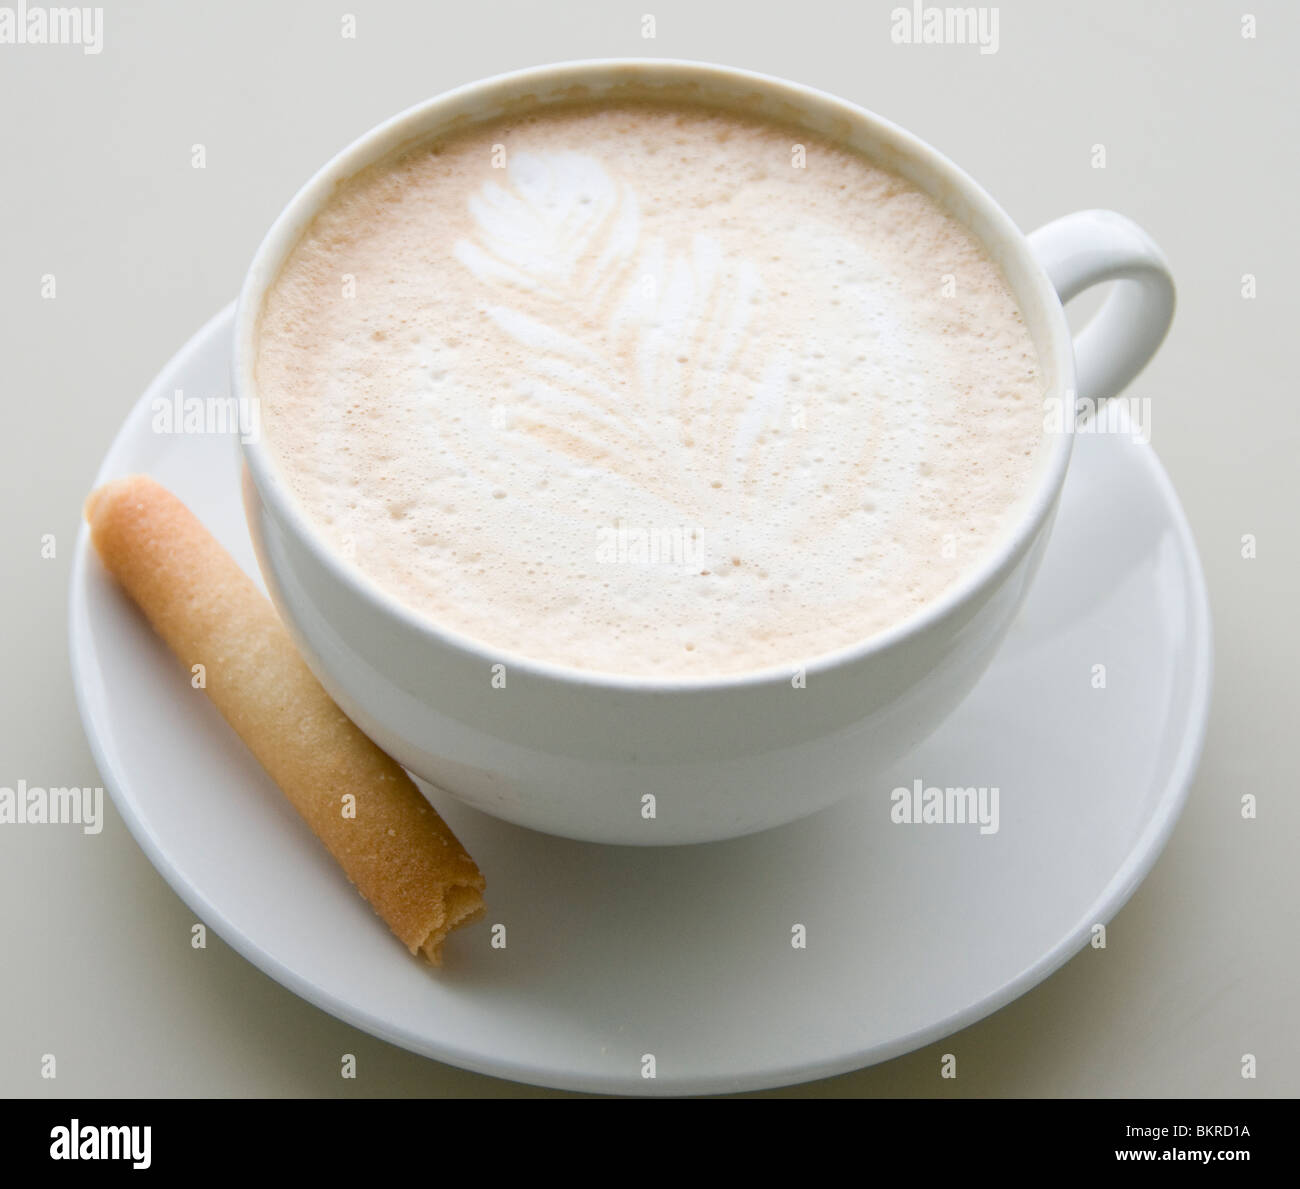 Coffee and biscuit - Stock Image